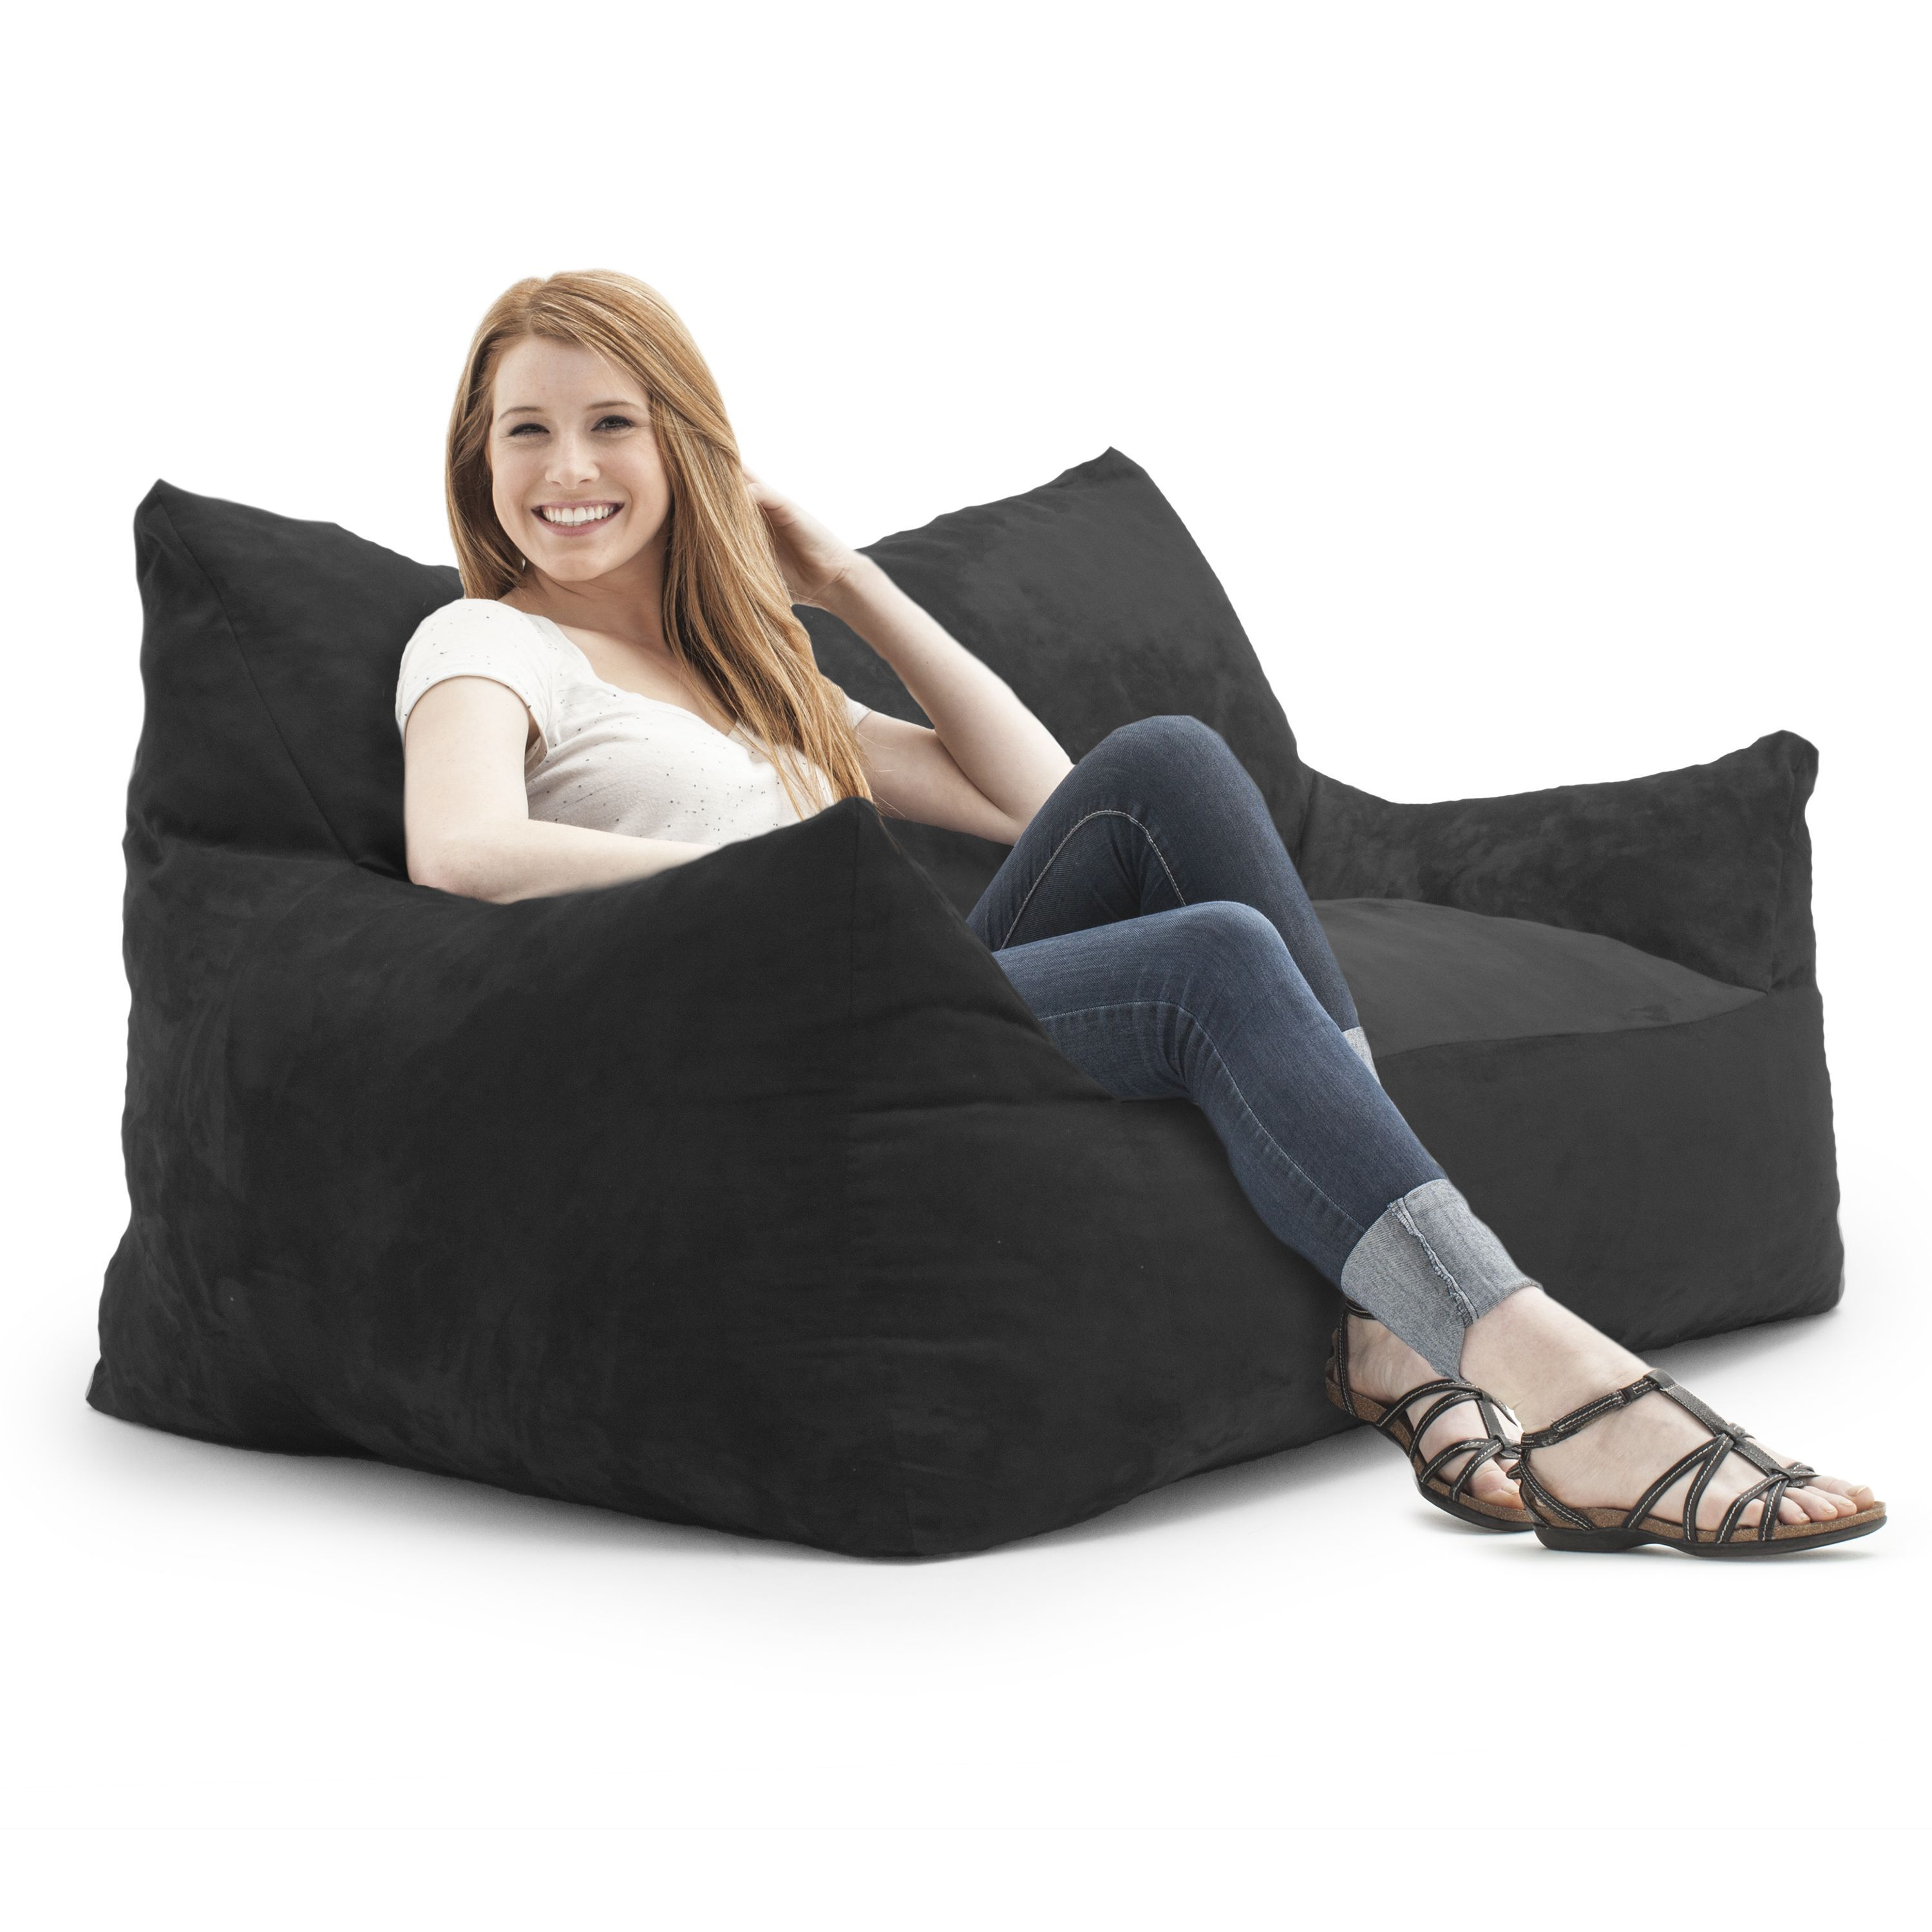 Relax In The Comfortable Fufsack Imperial Memory Foam